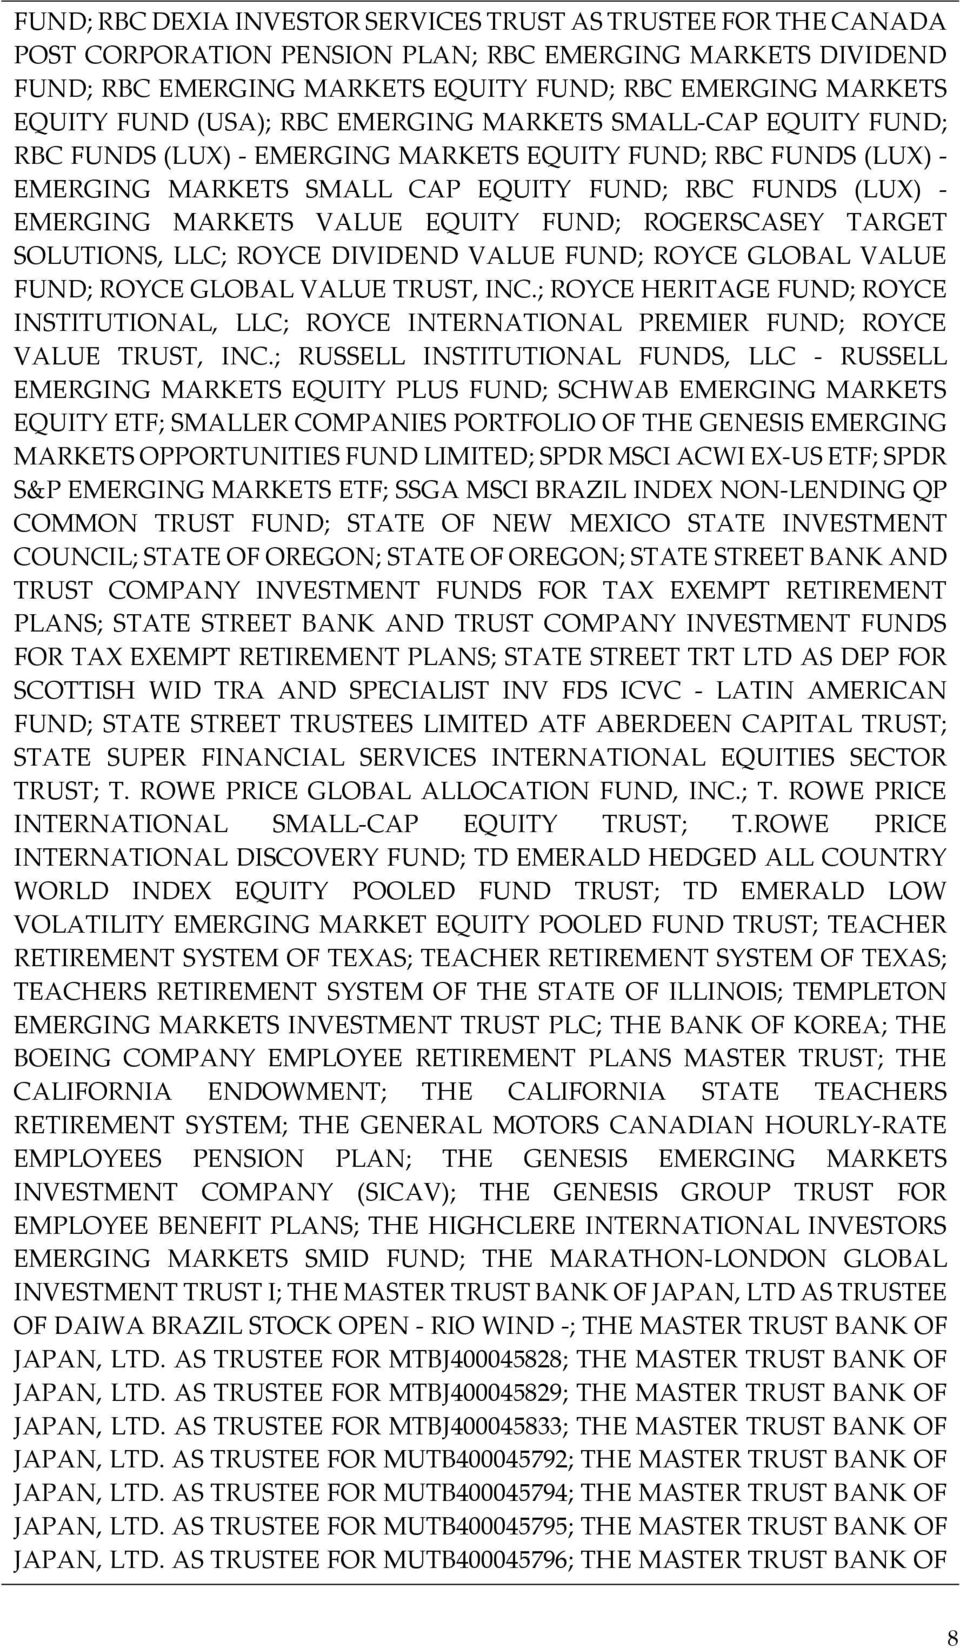 EQUITY FUND; ROGERSCASEY TARGET SOLUTIONS, LLC; ROYCE DIVIDEND VALUE FUND; ROYCE GLOBAL VALUE FUND; ROYCE GLOBAL VALUE TRUST, INC.